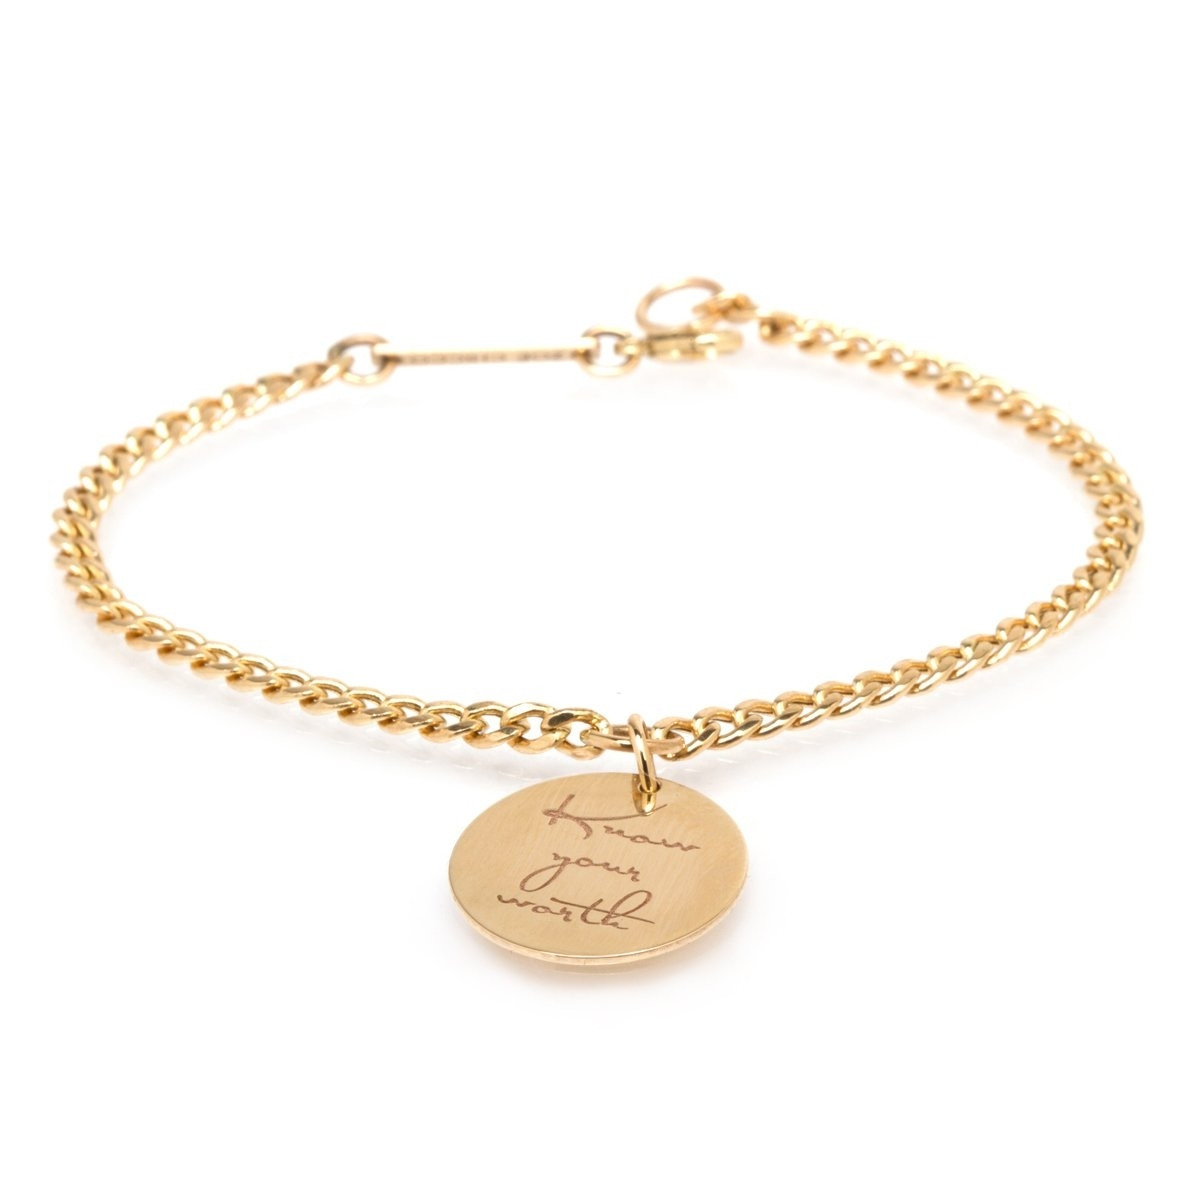 "Zoë Chicco Small Mantra Charm Bracelet ""Know your worth"""